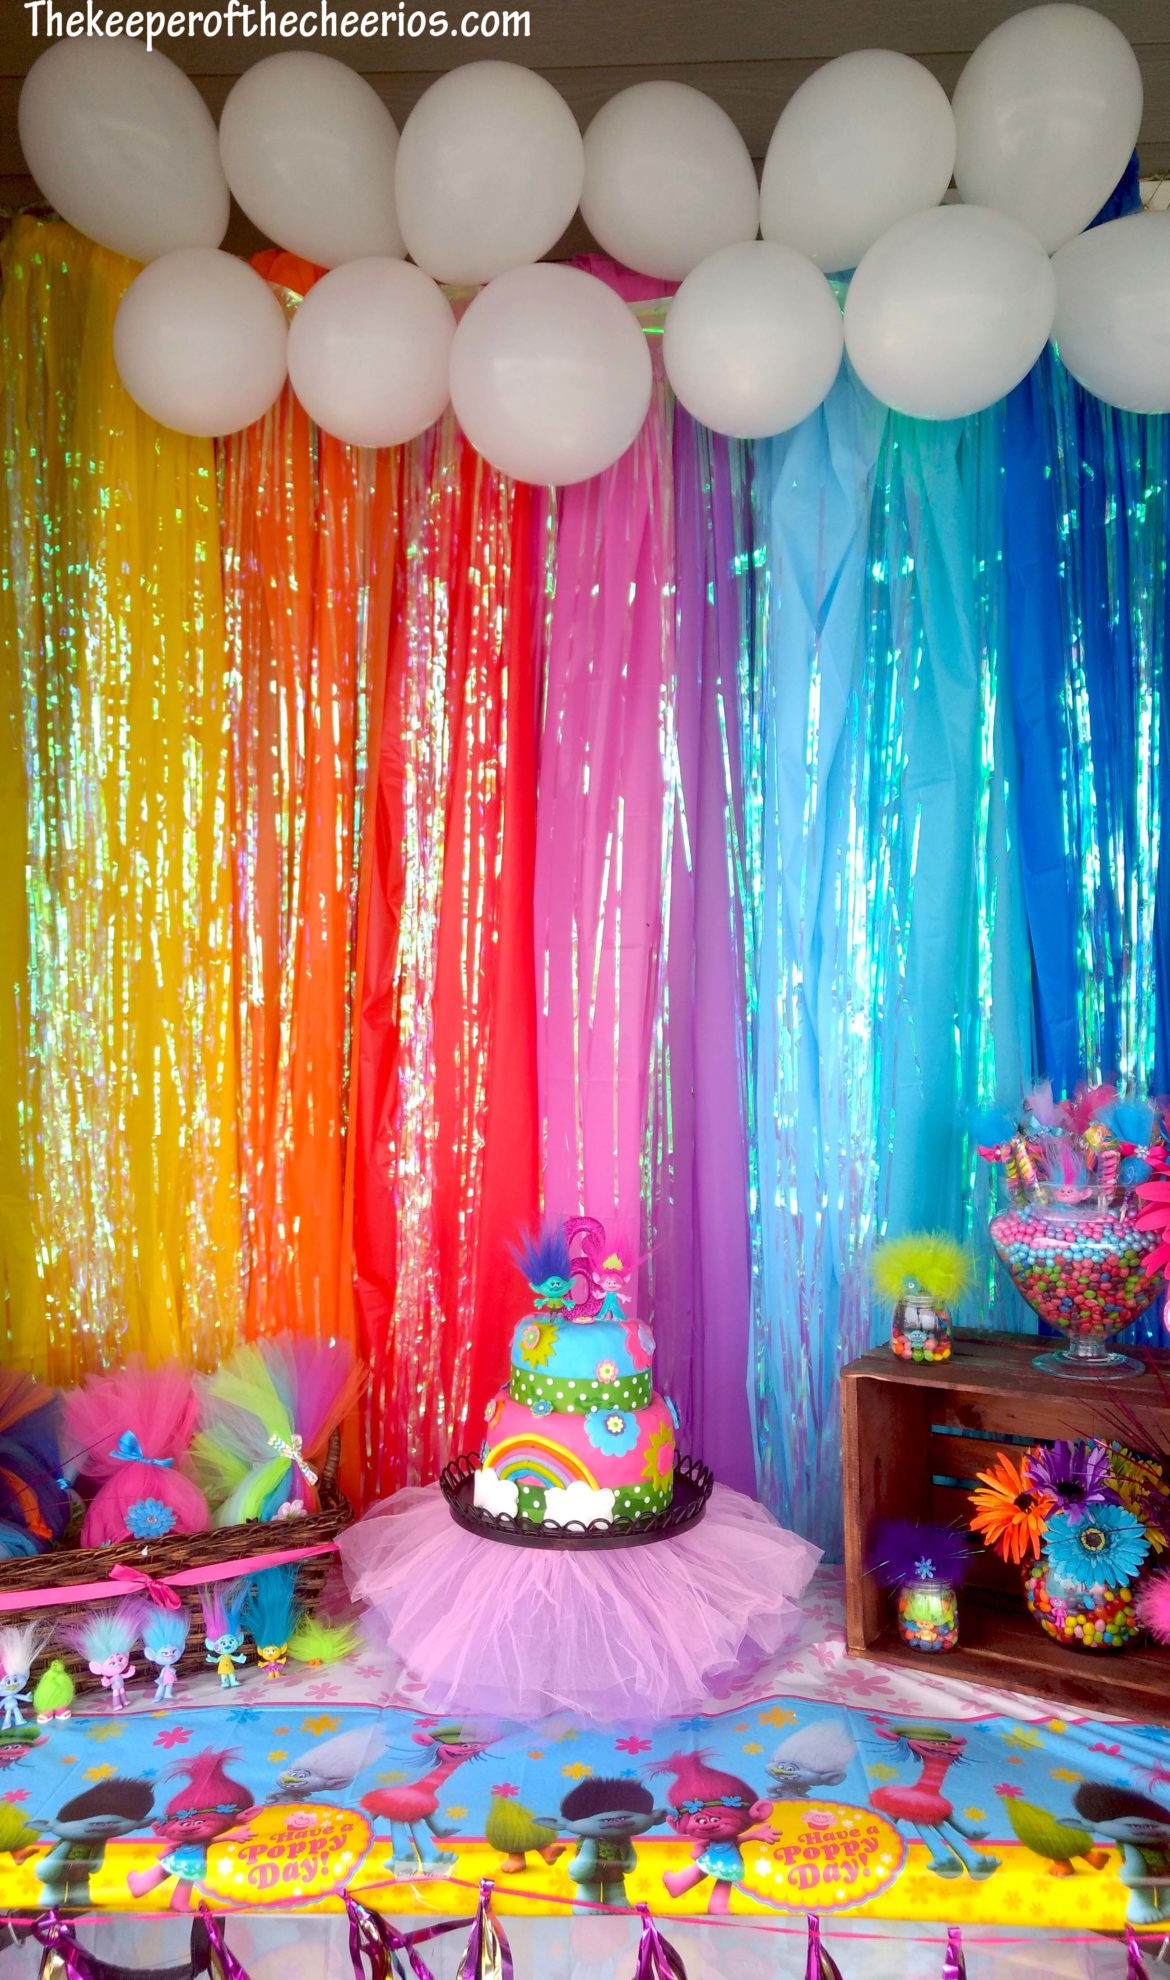 Best ideas about Trolls Birthday Decorations . Save or Pin Trolls Birthday Party The Keeper of the Cheerios Now.